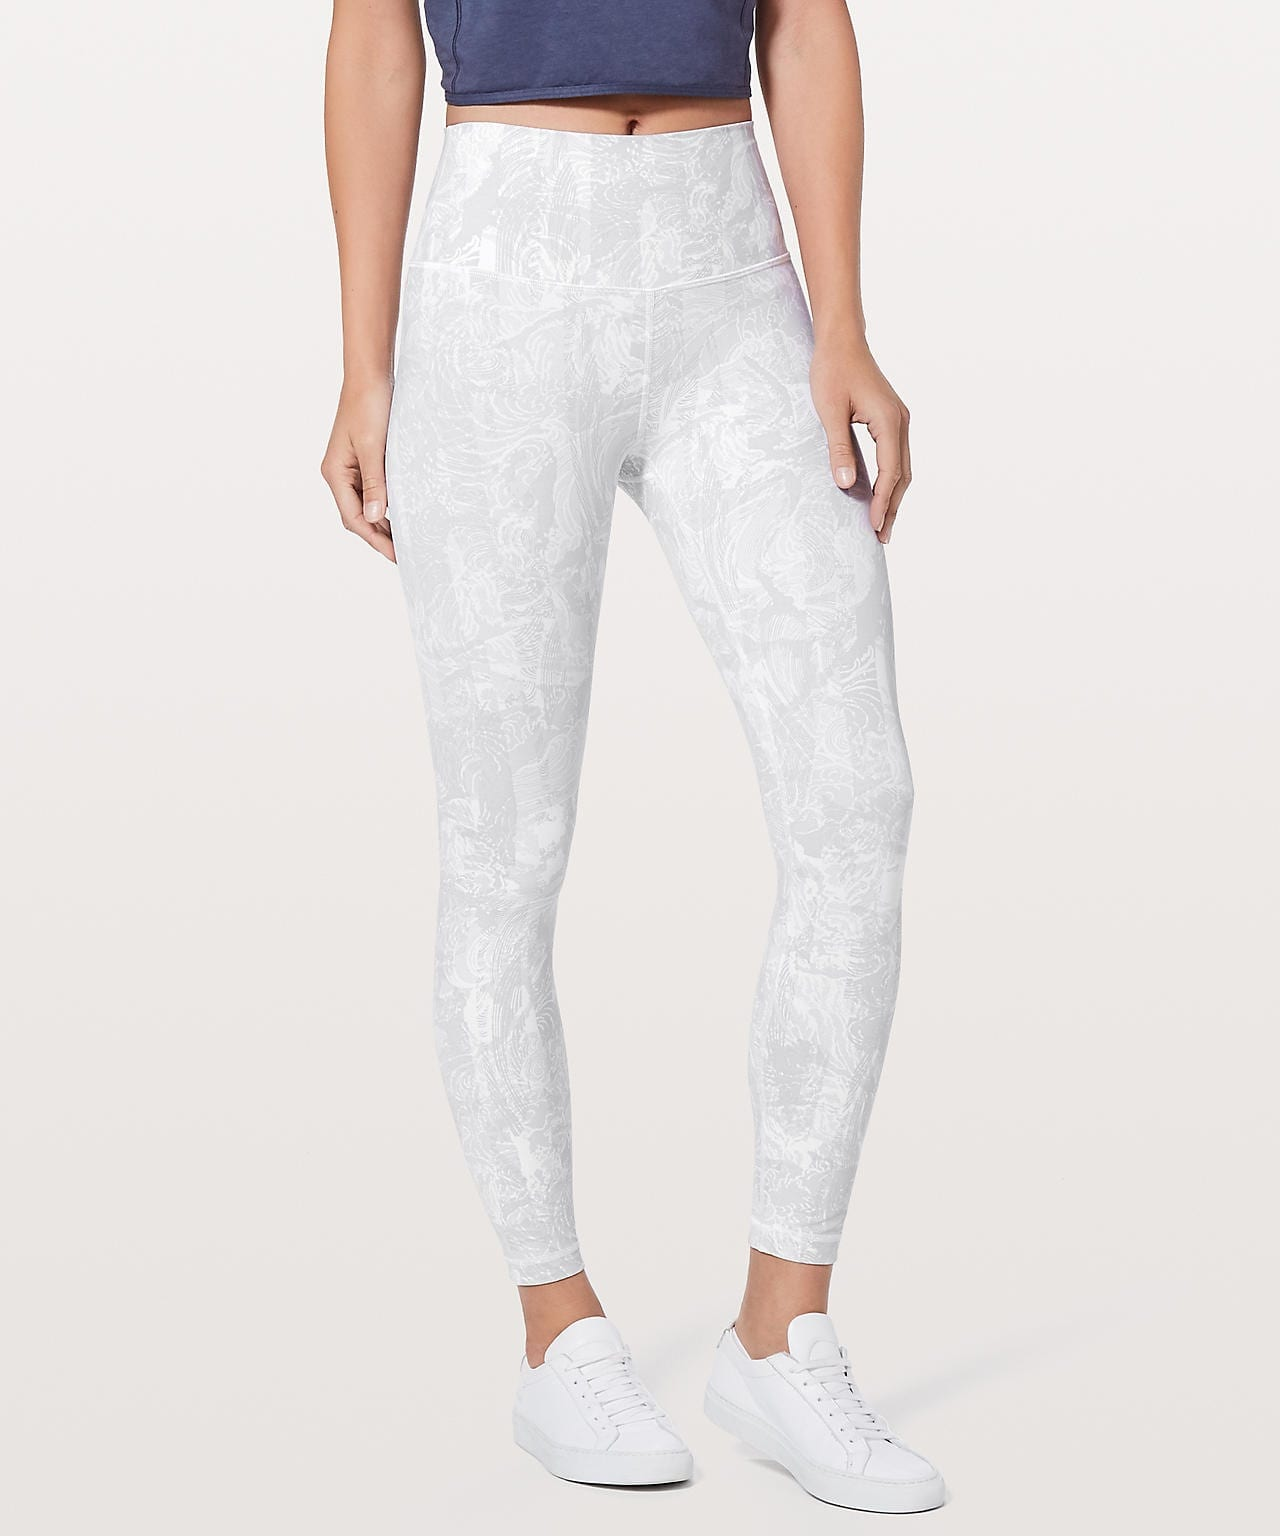 Eternal Wave White Wunder Under Hi-Rise 7:8 Tight